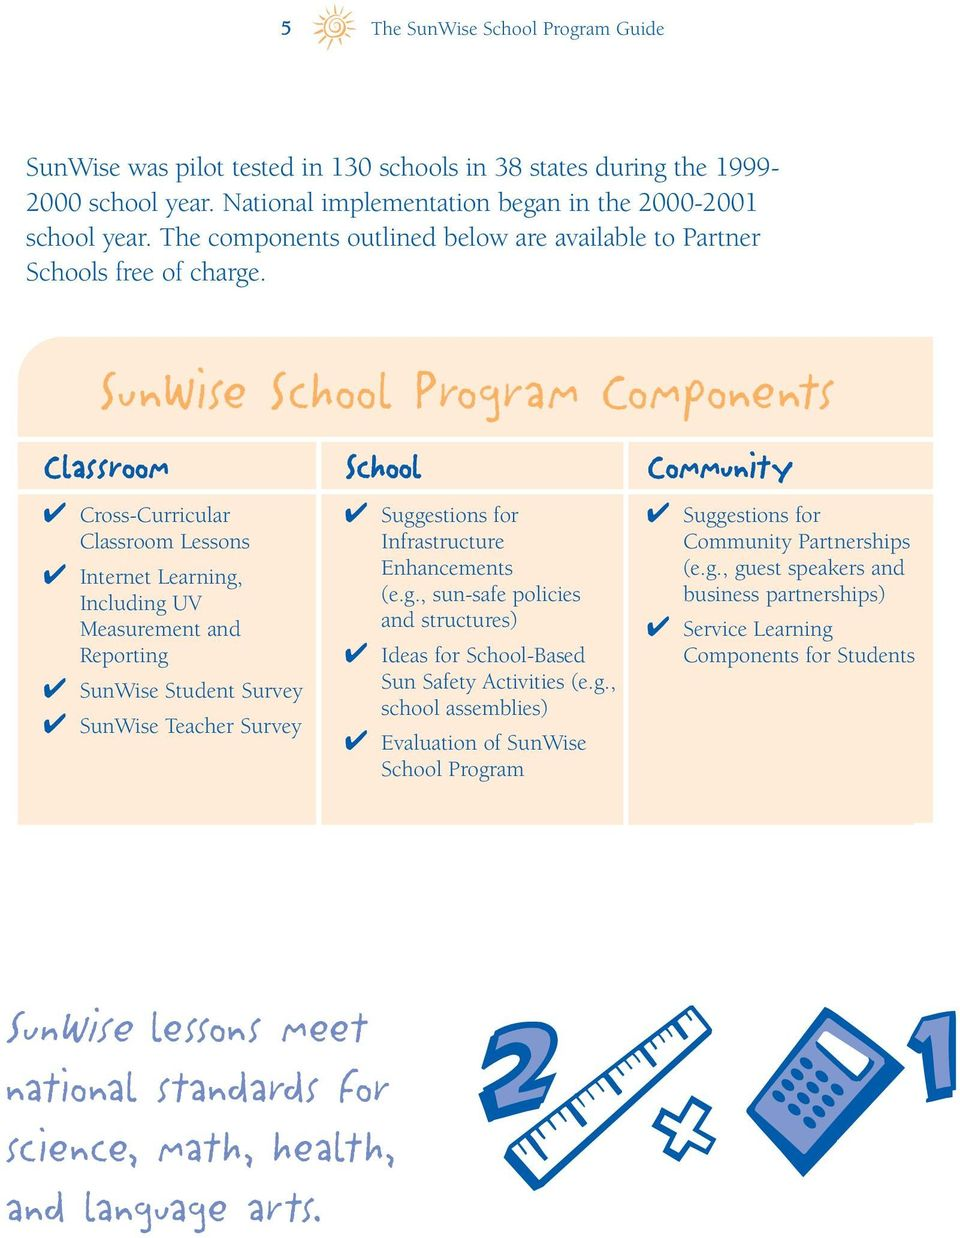 SunWise School Program Components Classroom Cross-Curricular Classroom Lessons Internet Learning, Including UV Measurement and Reporting SunWise Student Survey SunWise Teacher Survey School